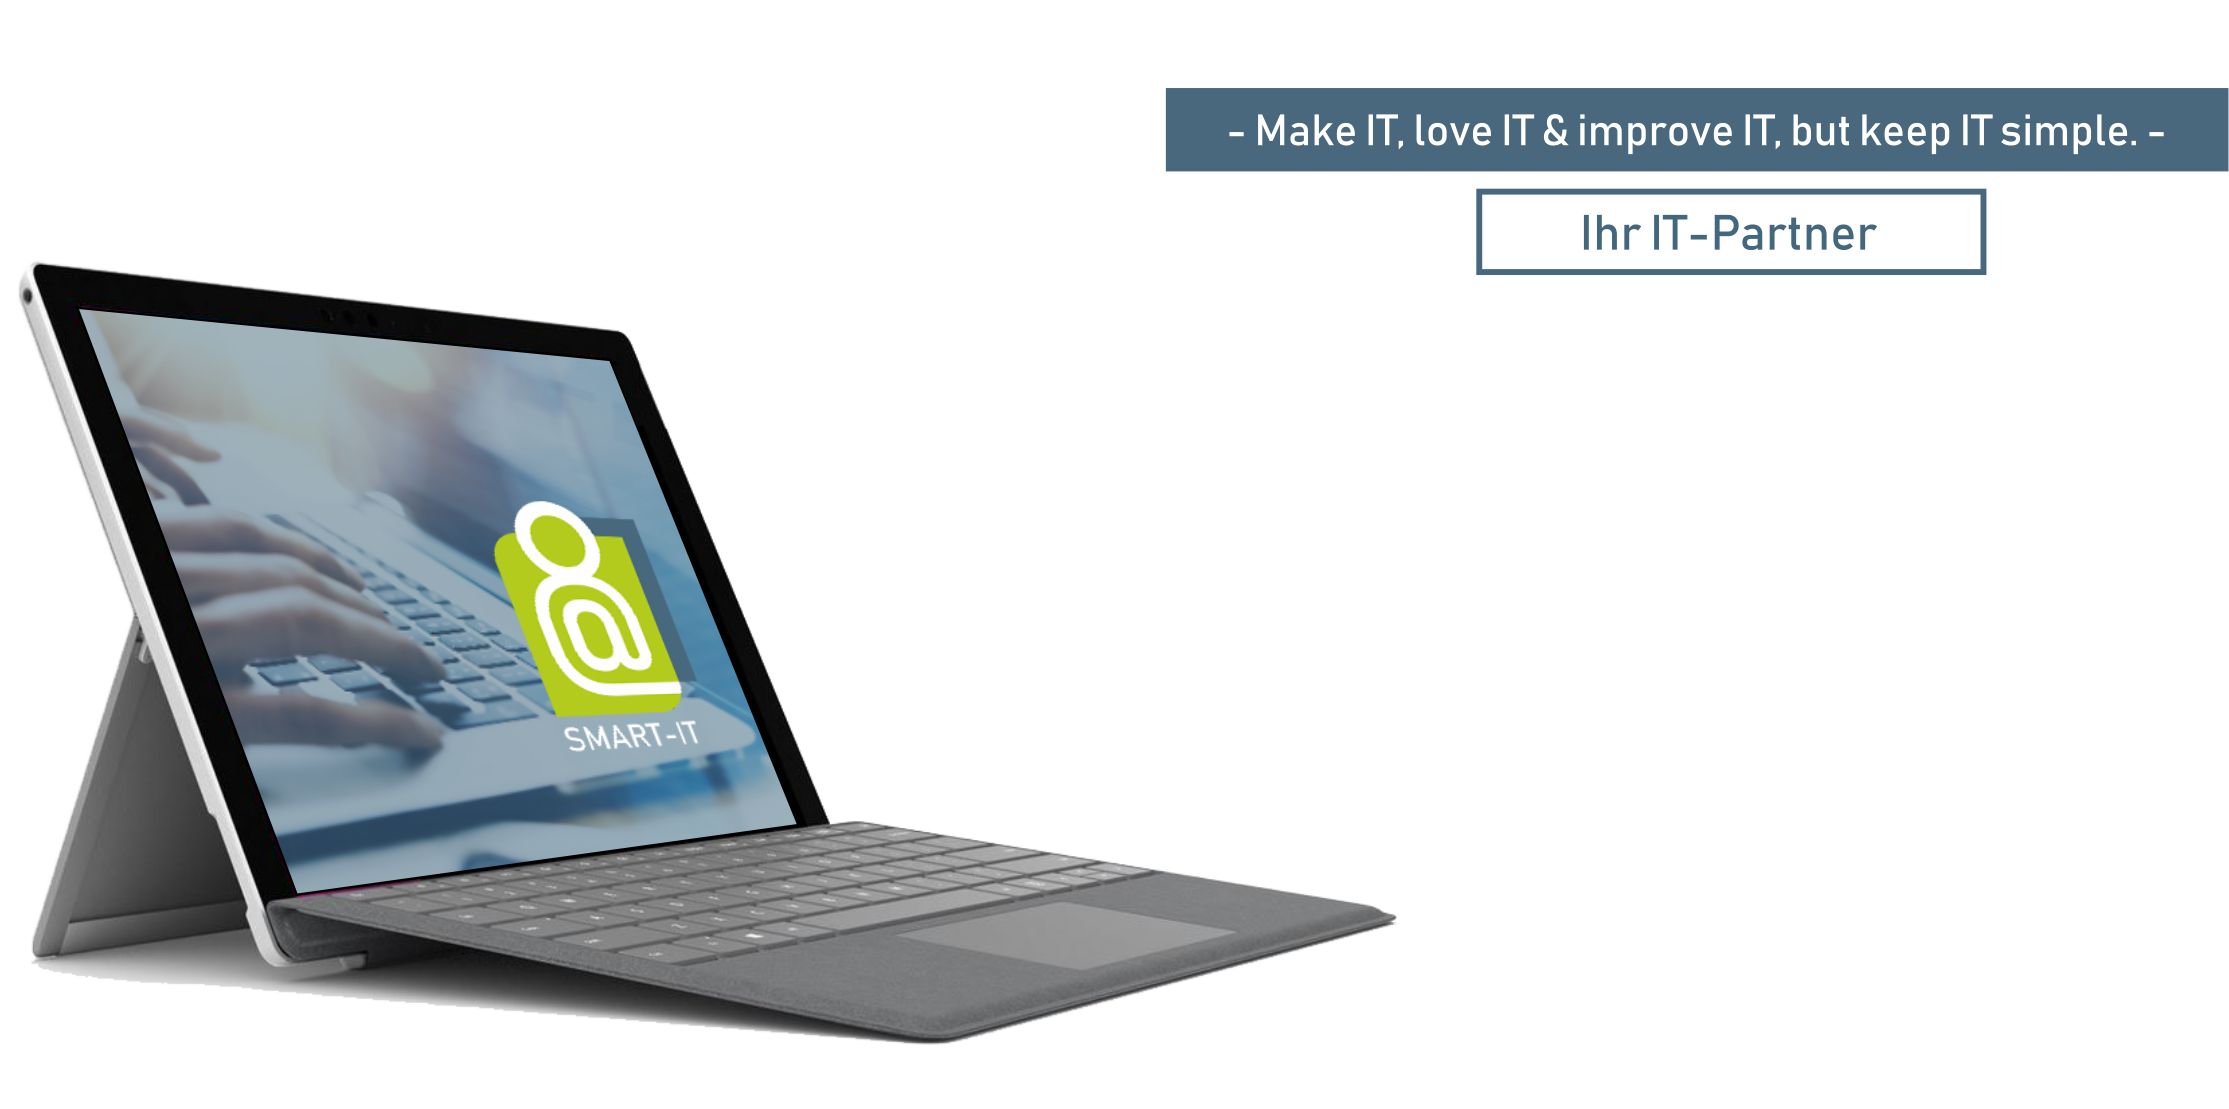 SMART-IT GmbH | Ihr IT-Partner in Biberach, Memmingen, Ochsenhausen, Bad Waldsee, Bad Wurzach, Laupheim, Ehingen, Riedlingen